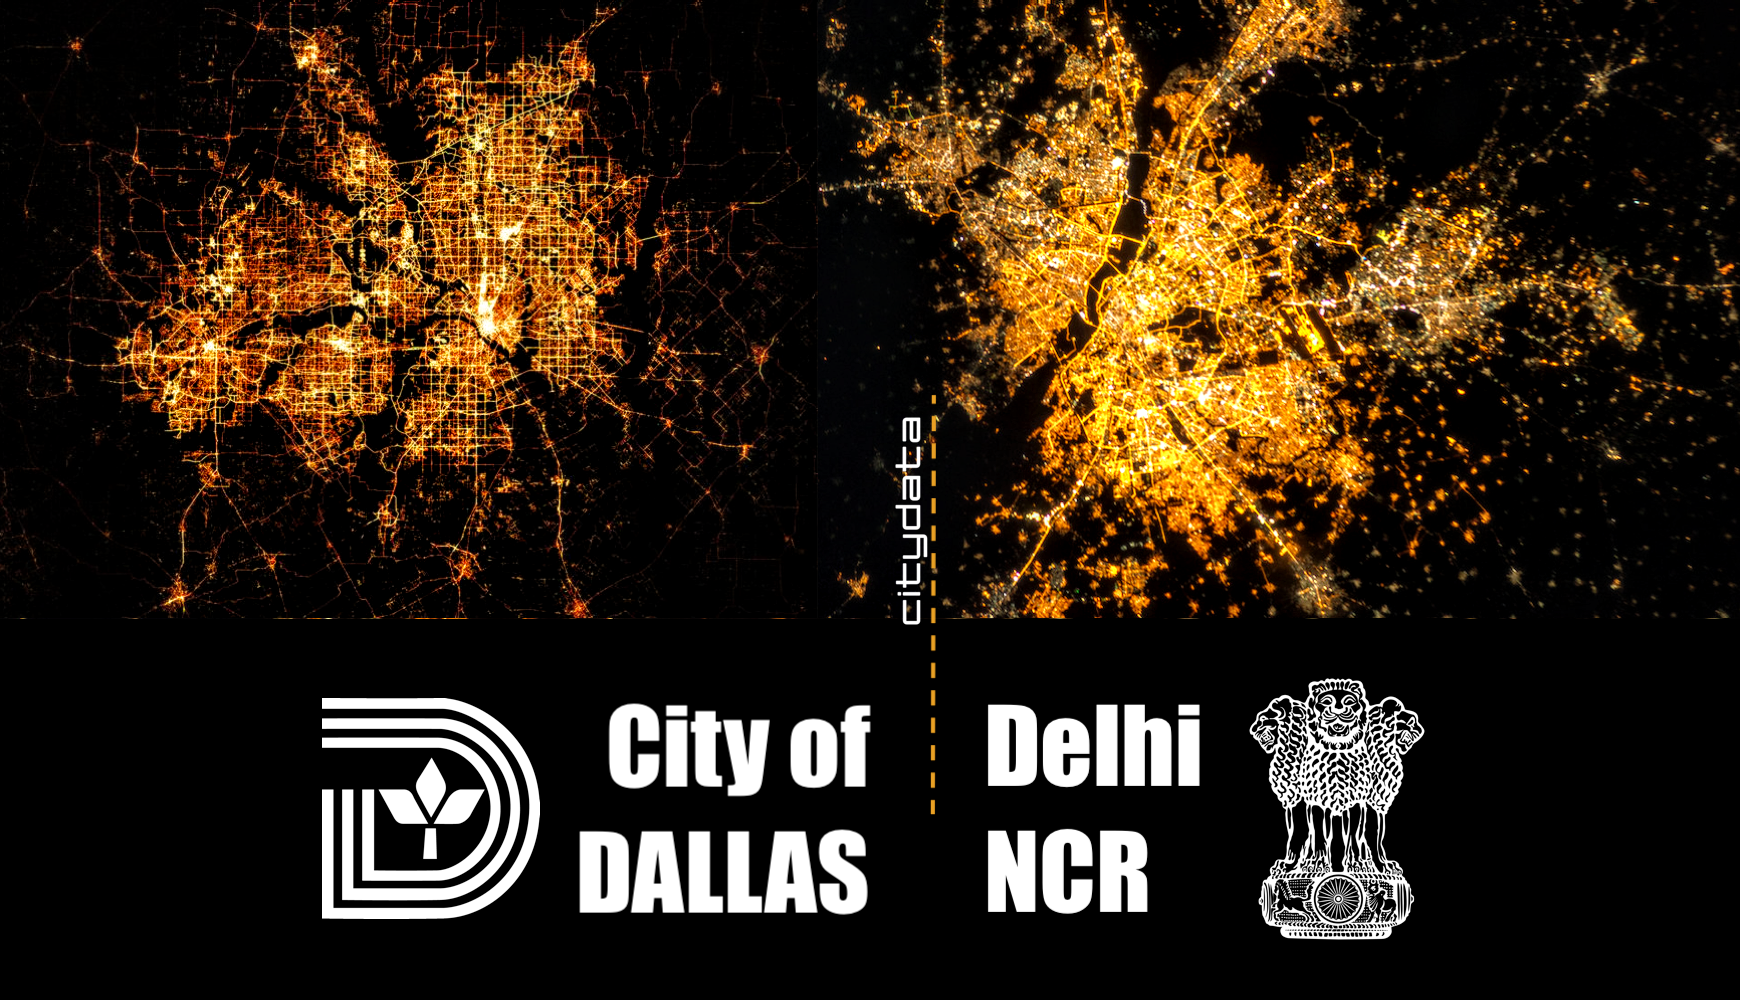 Mobility trip patterns for Delhi and Dallas